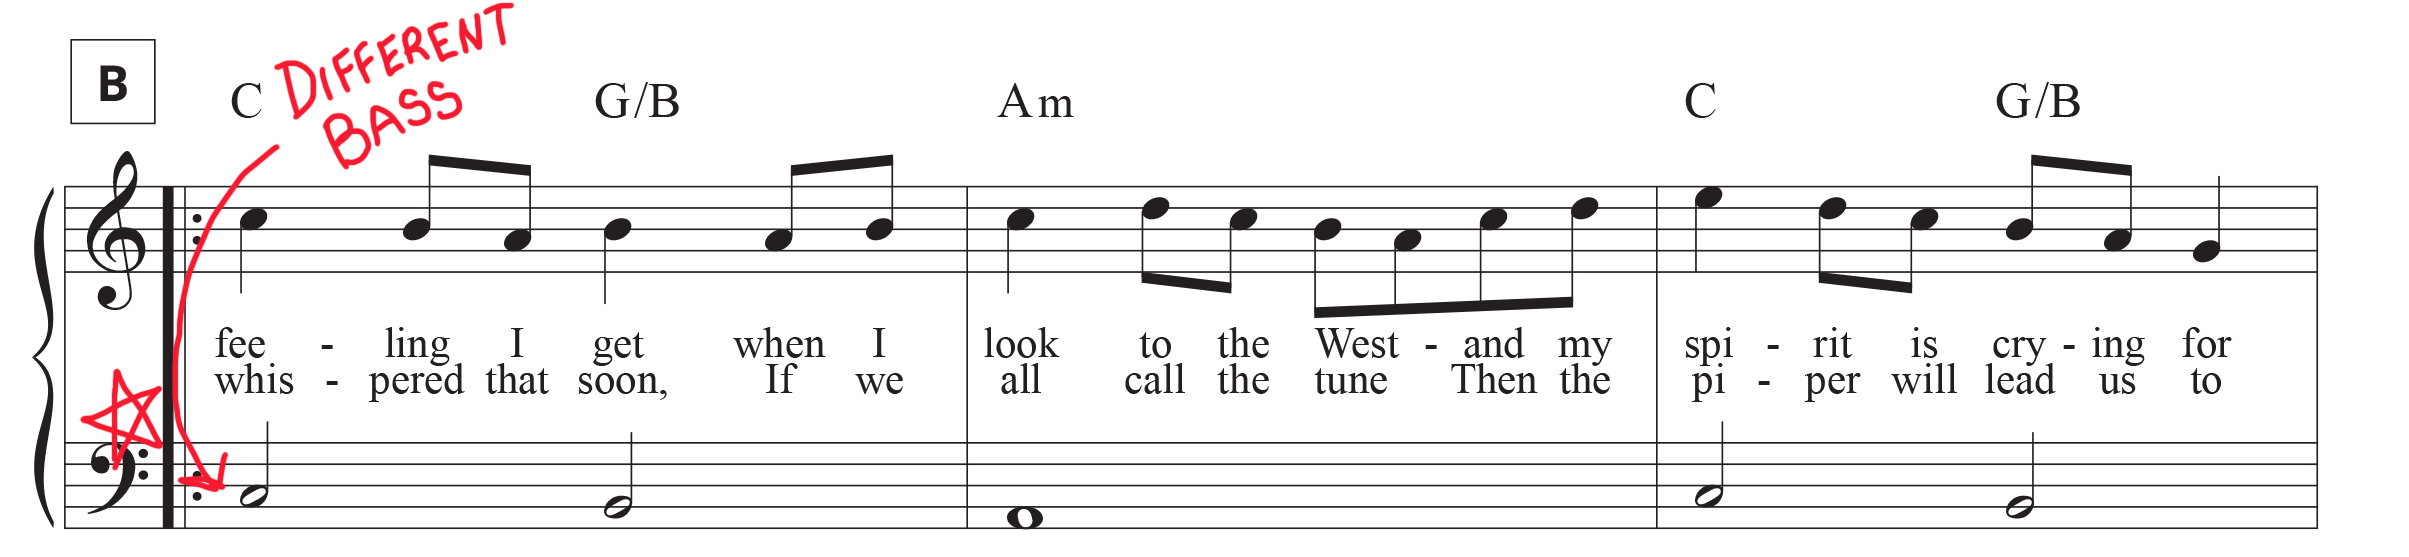 Stairway to Heaven section B sheet music mark-up of different bass line.